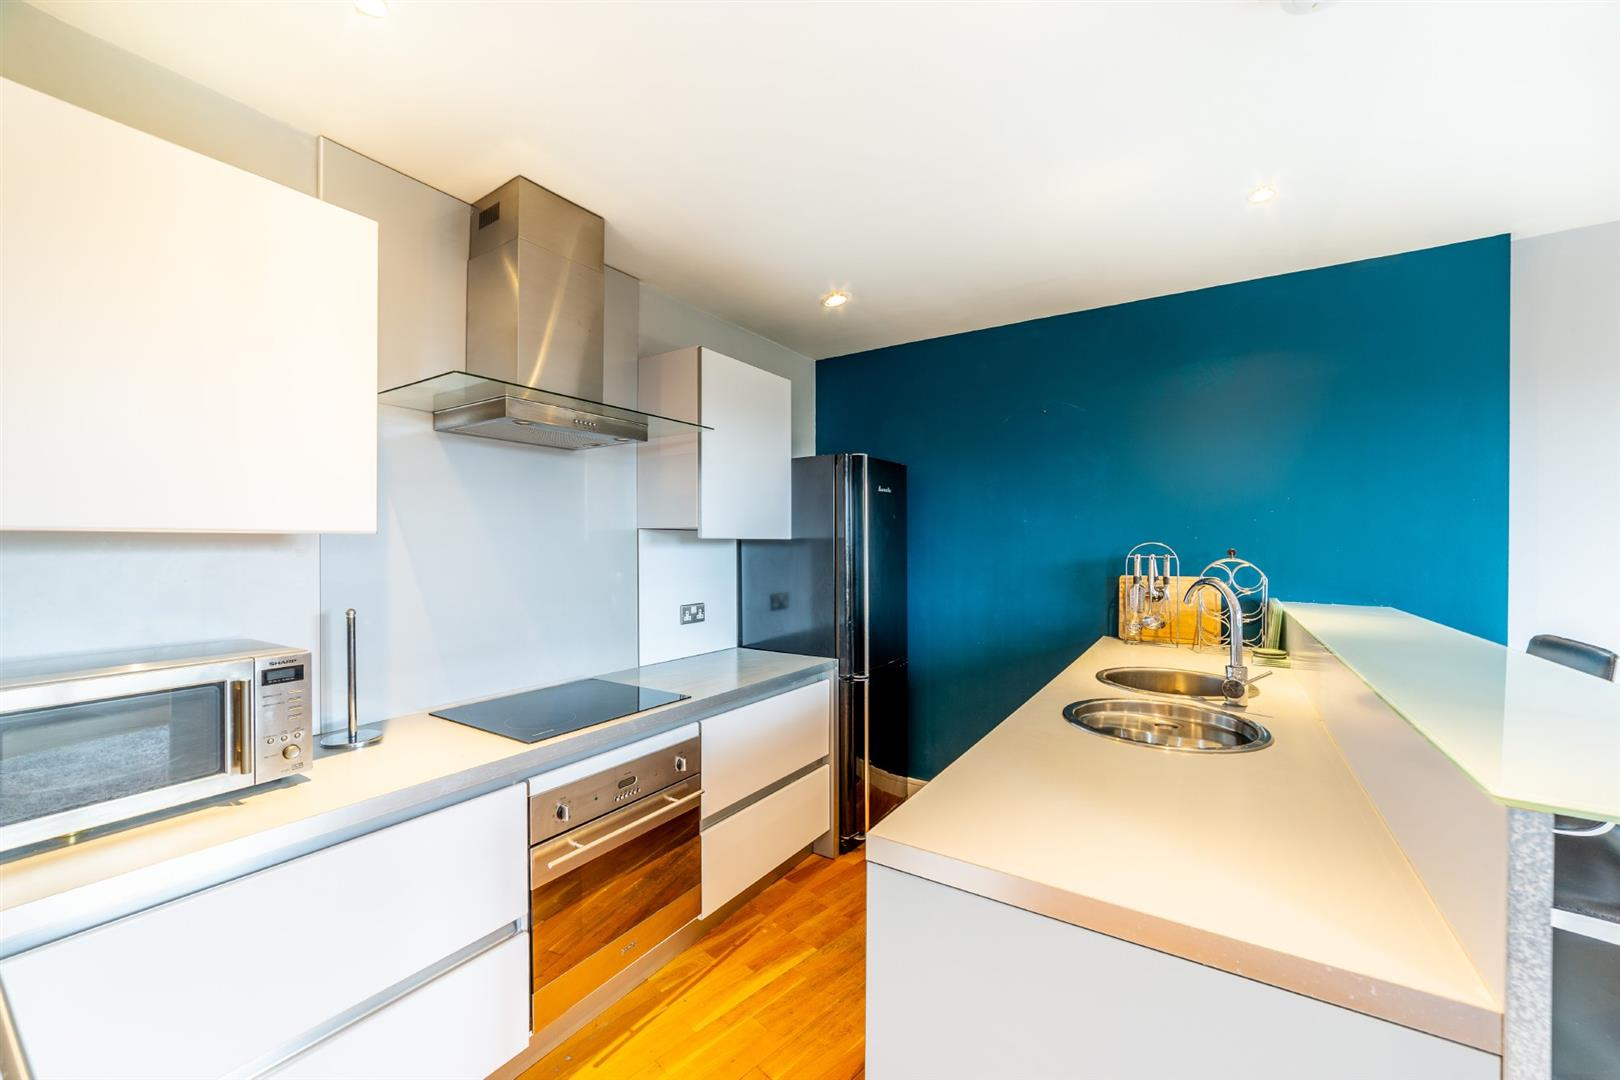 2 bed penthouse for sale in Newcastle Upon Tyne, NE1 3BB 4